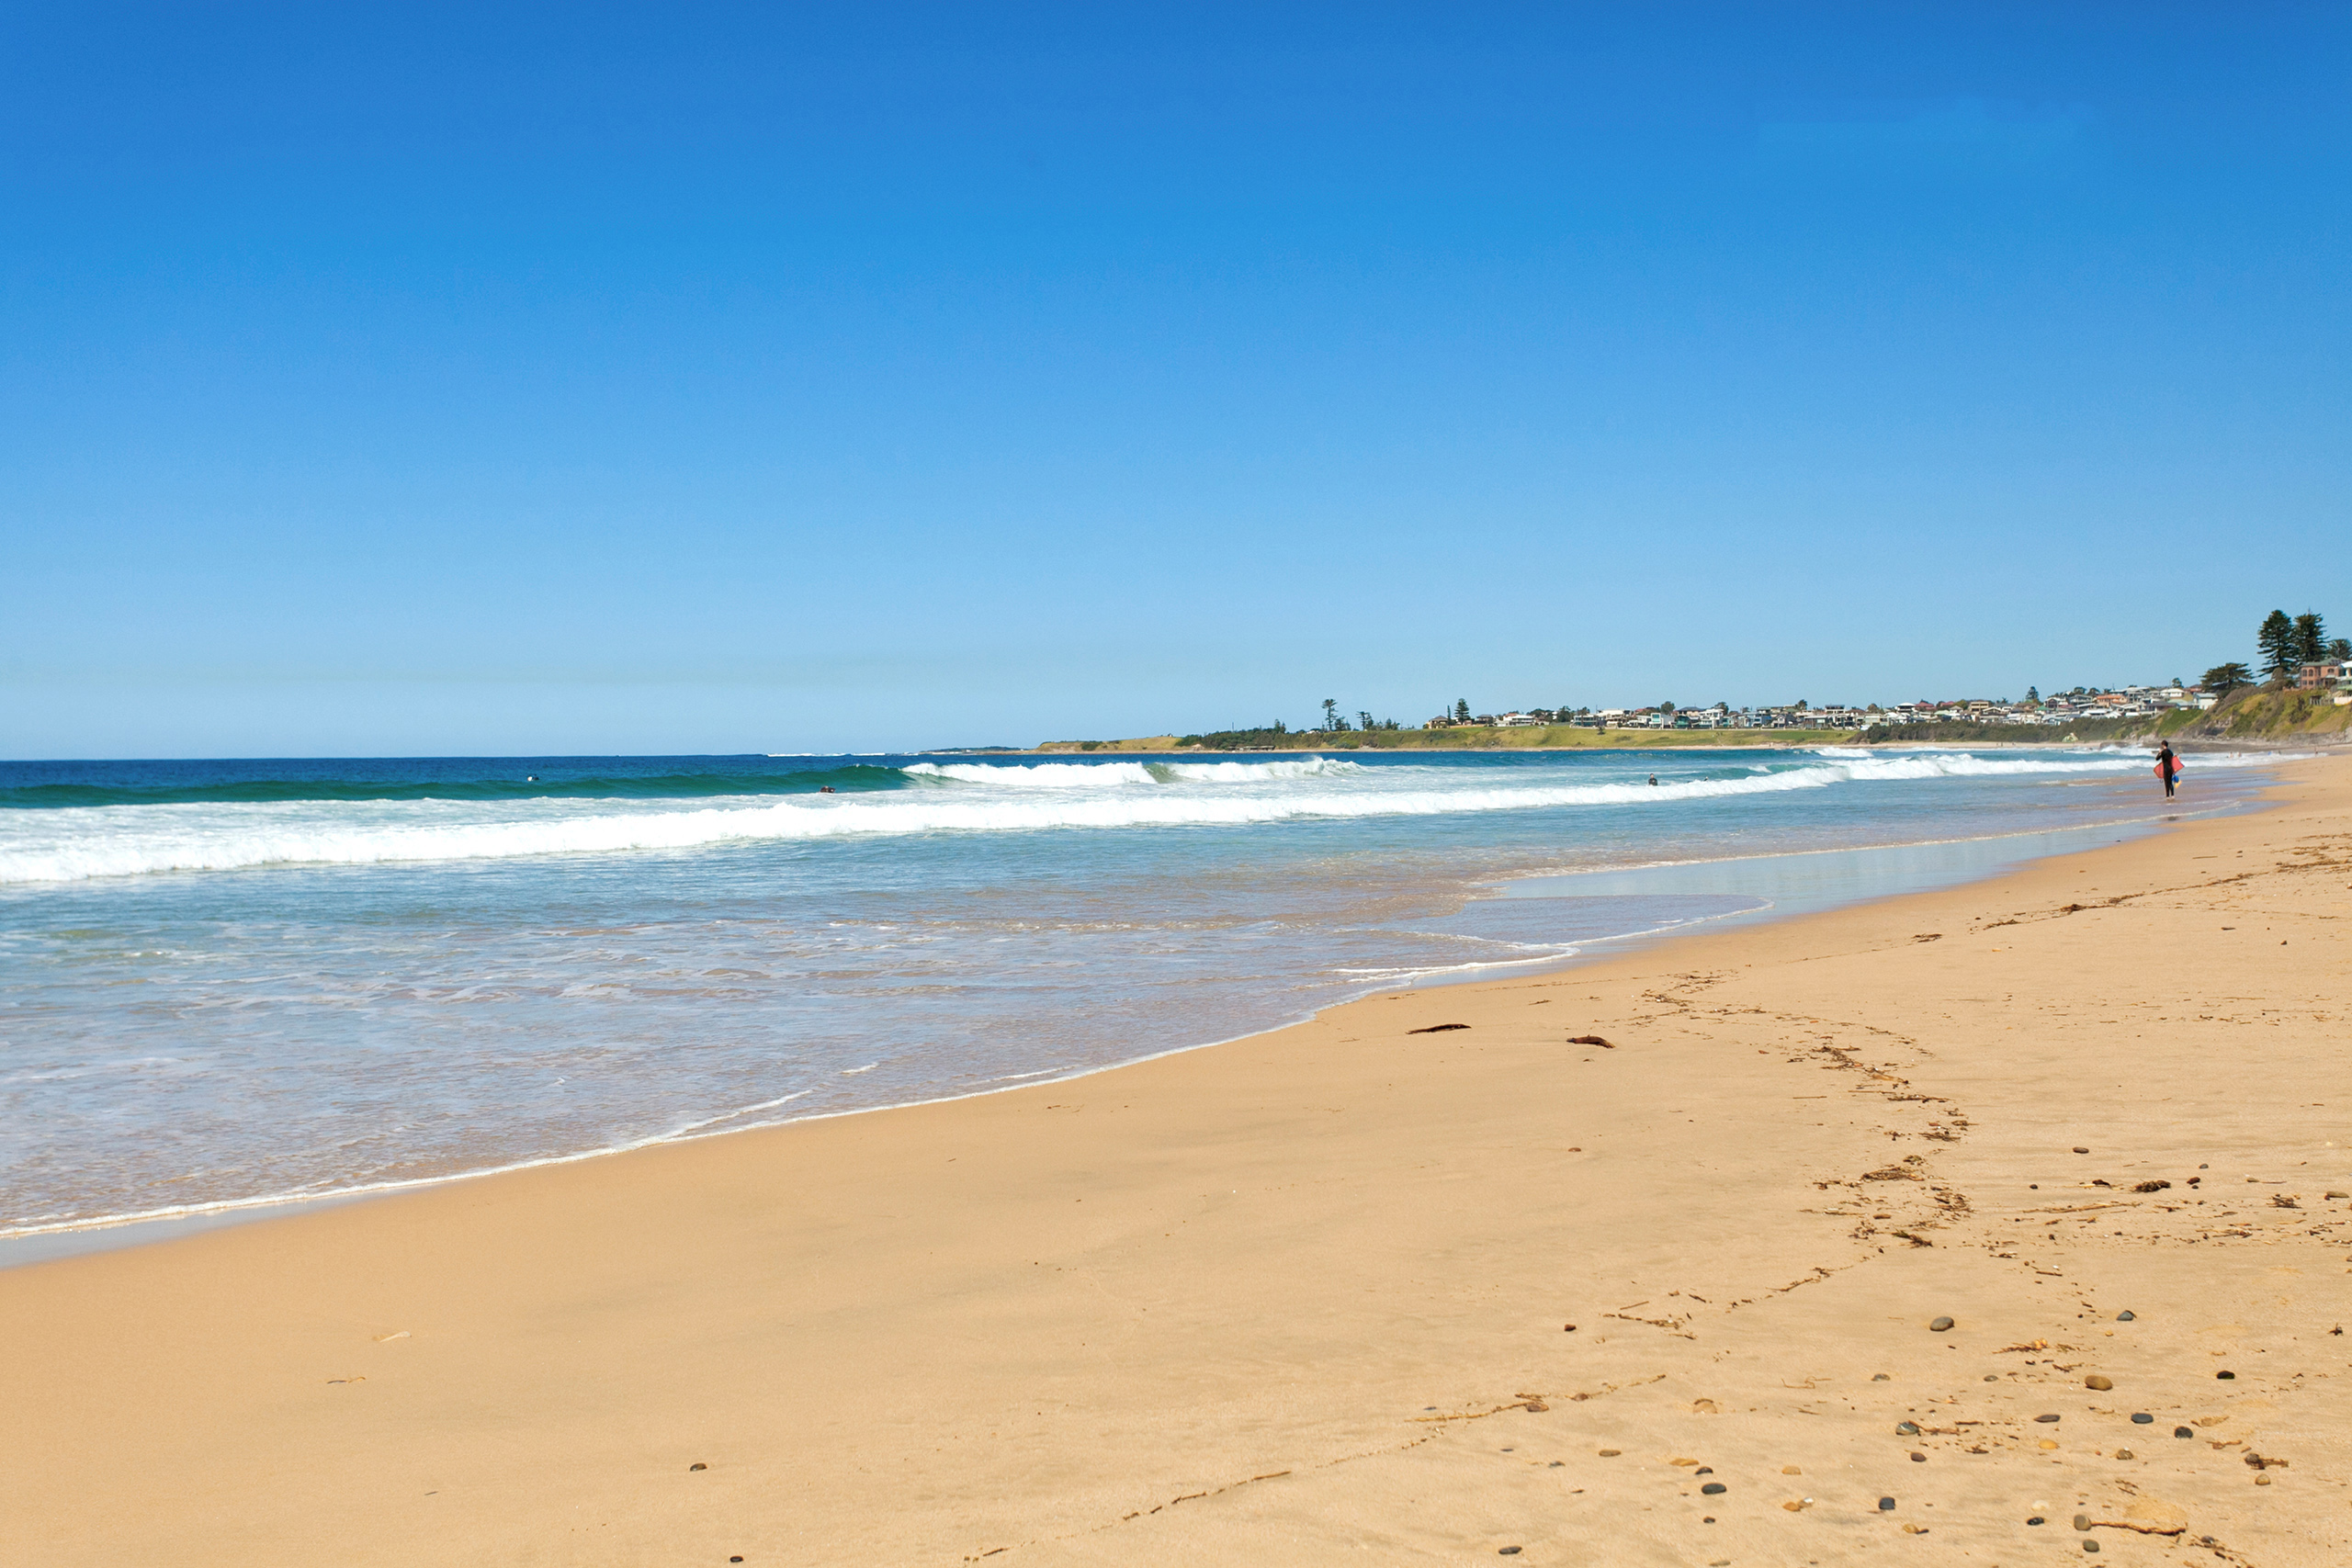 Thirroul Trend: Find out how much Thirroul is growing and who is buying